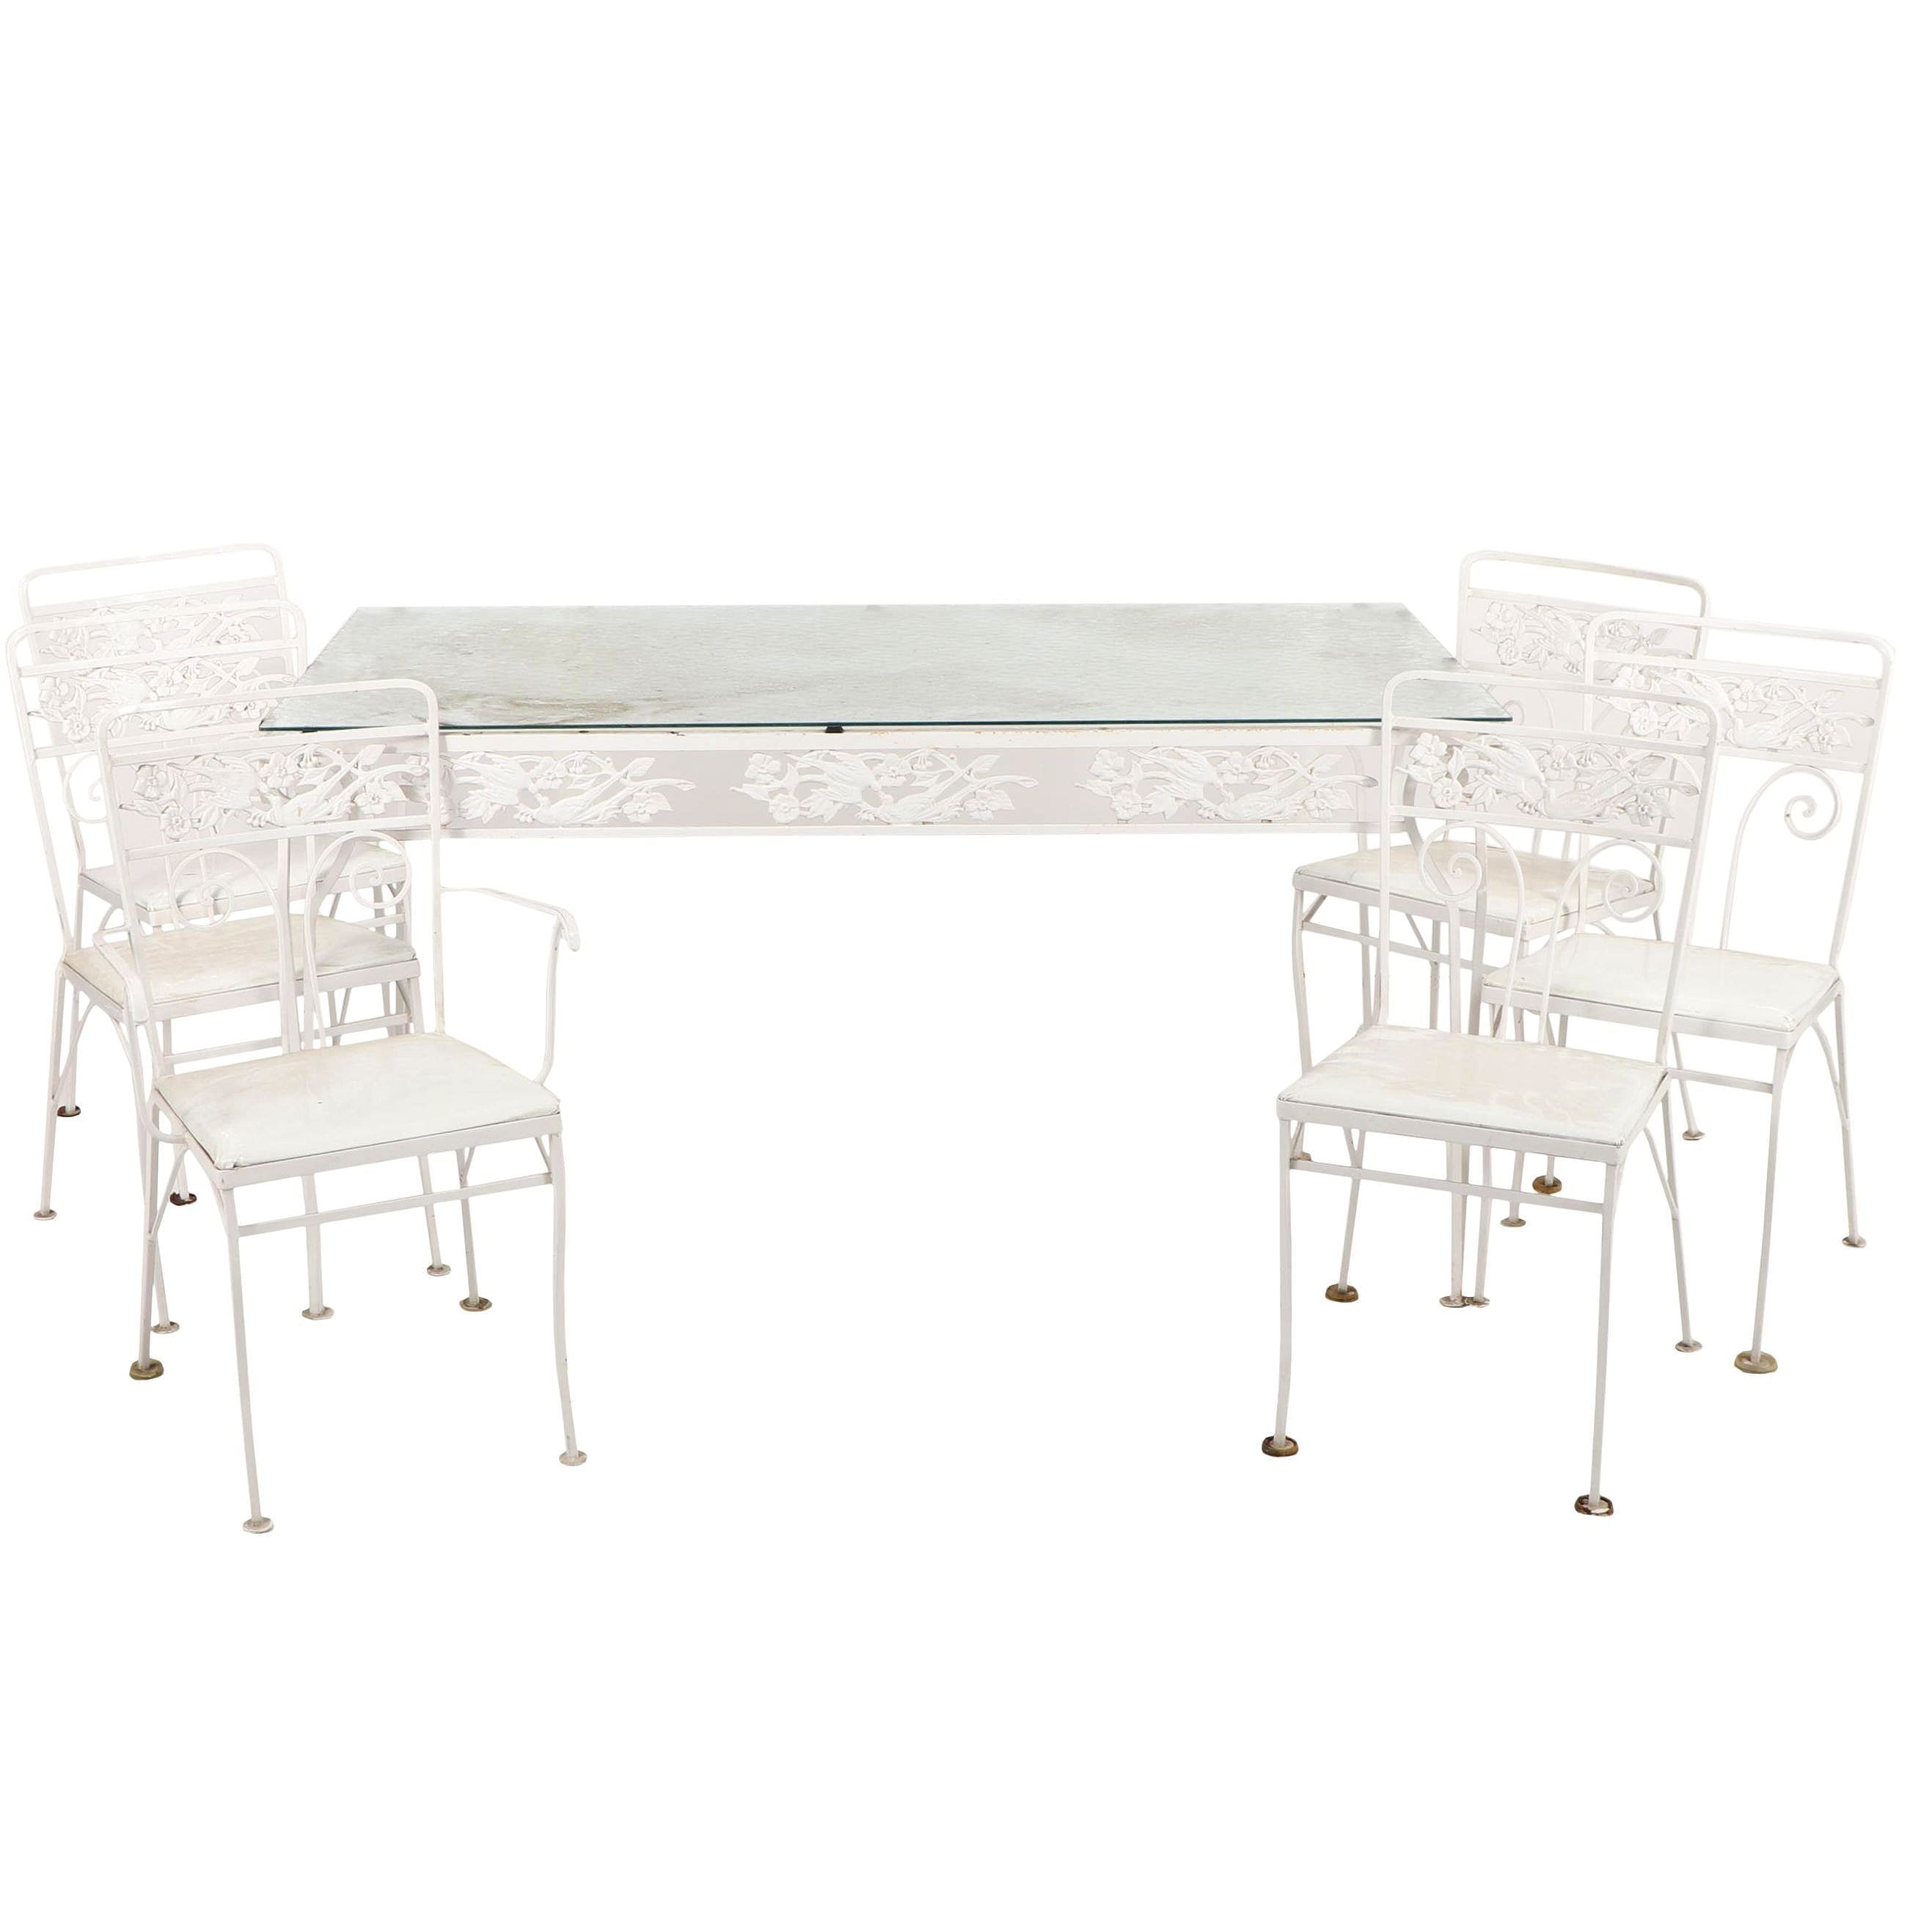 white metal glass top patio table and chairs rh ebth com Patio Table Glass Top Replacement Patio Table Glass Top White